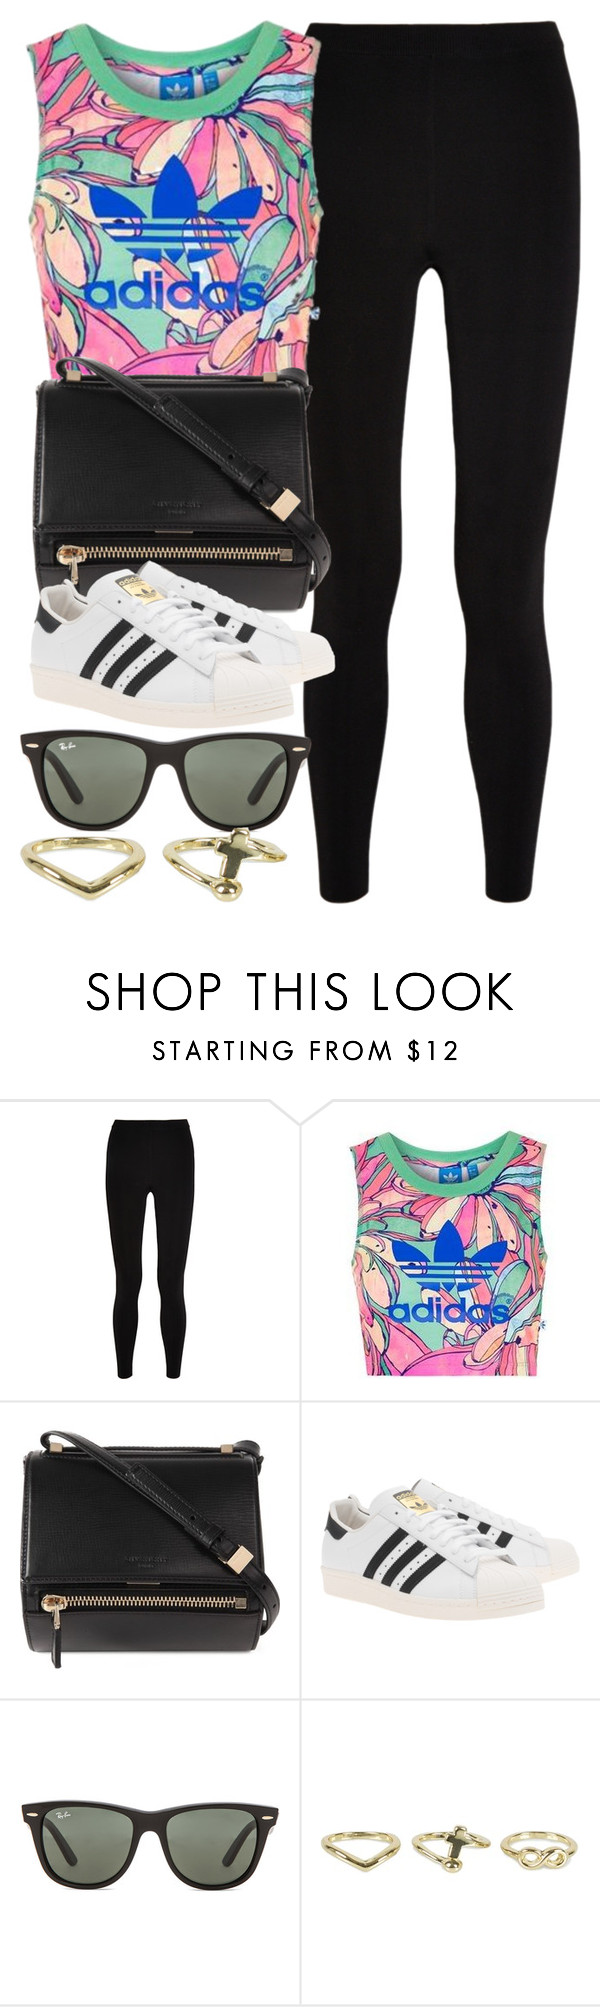 """""""Style #10467"""" by vany-alvarado ❤ liked on Polyvore featuring T By Alexander Wang, Topshop, Givenchy, adidas Originals, Ray-Ban and NLY Accessories"""